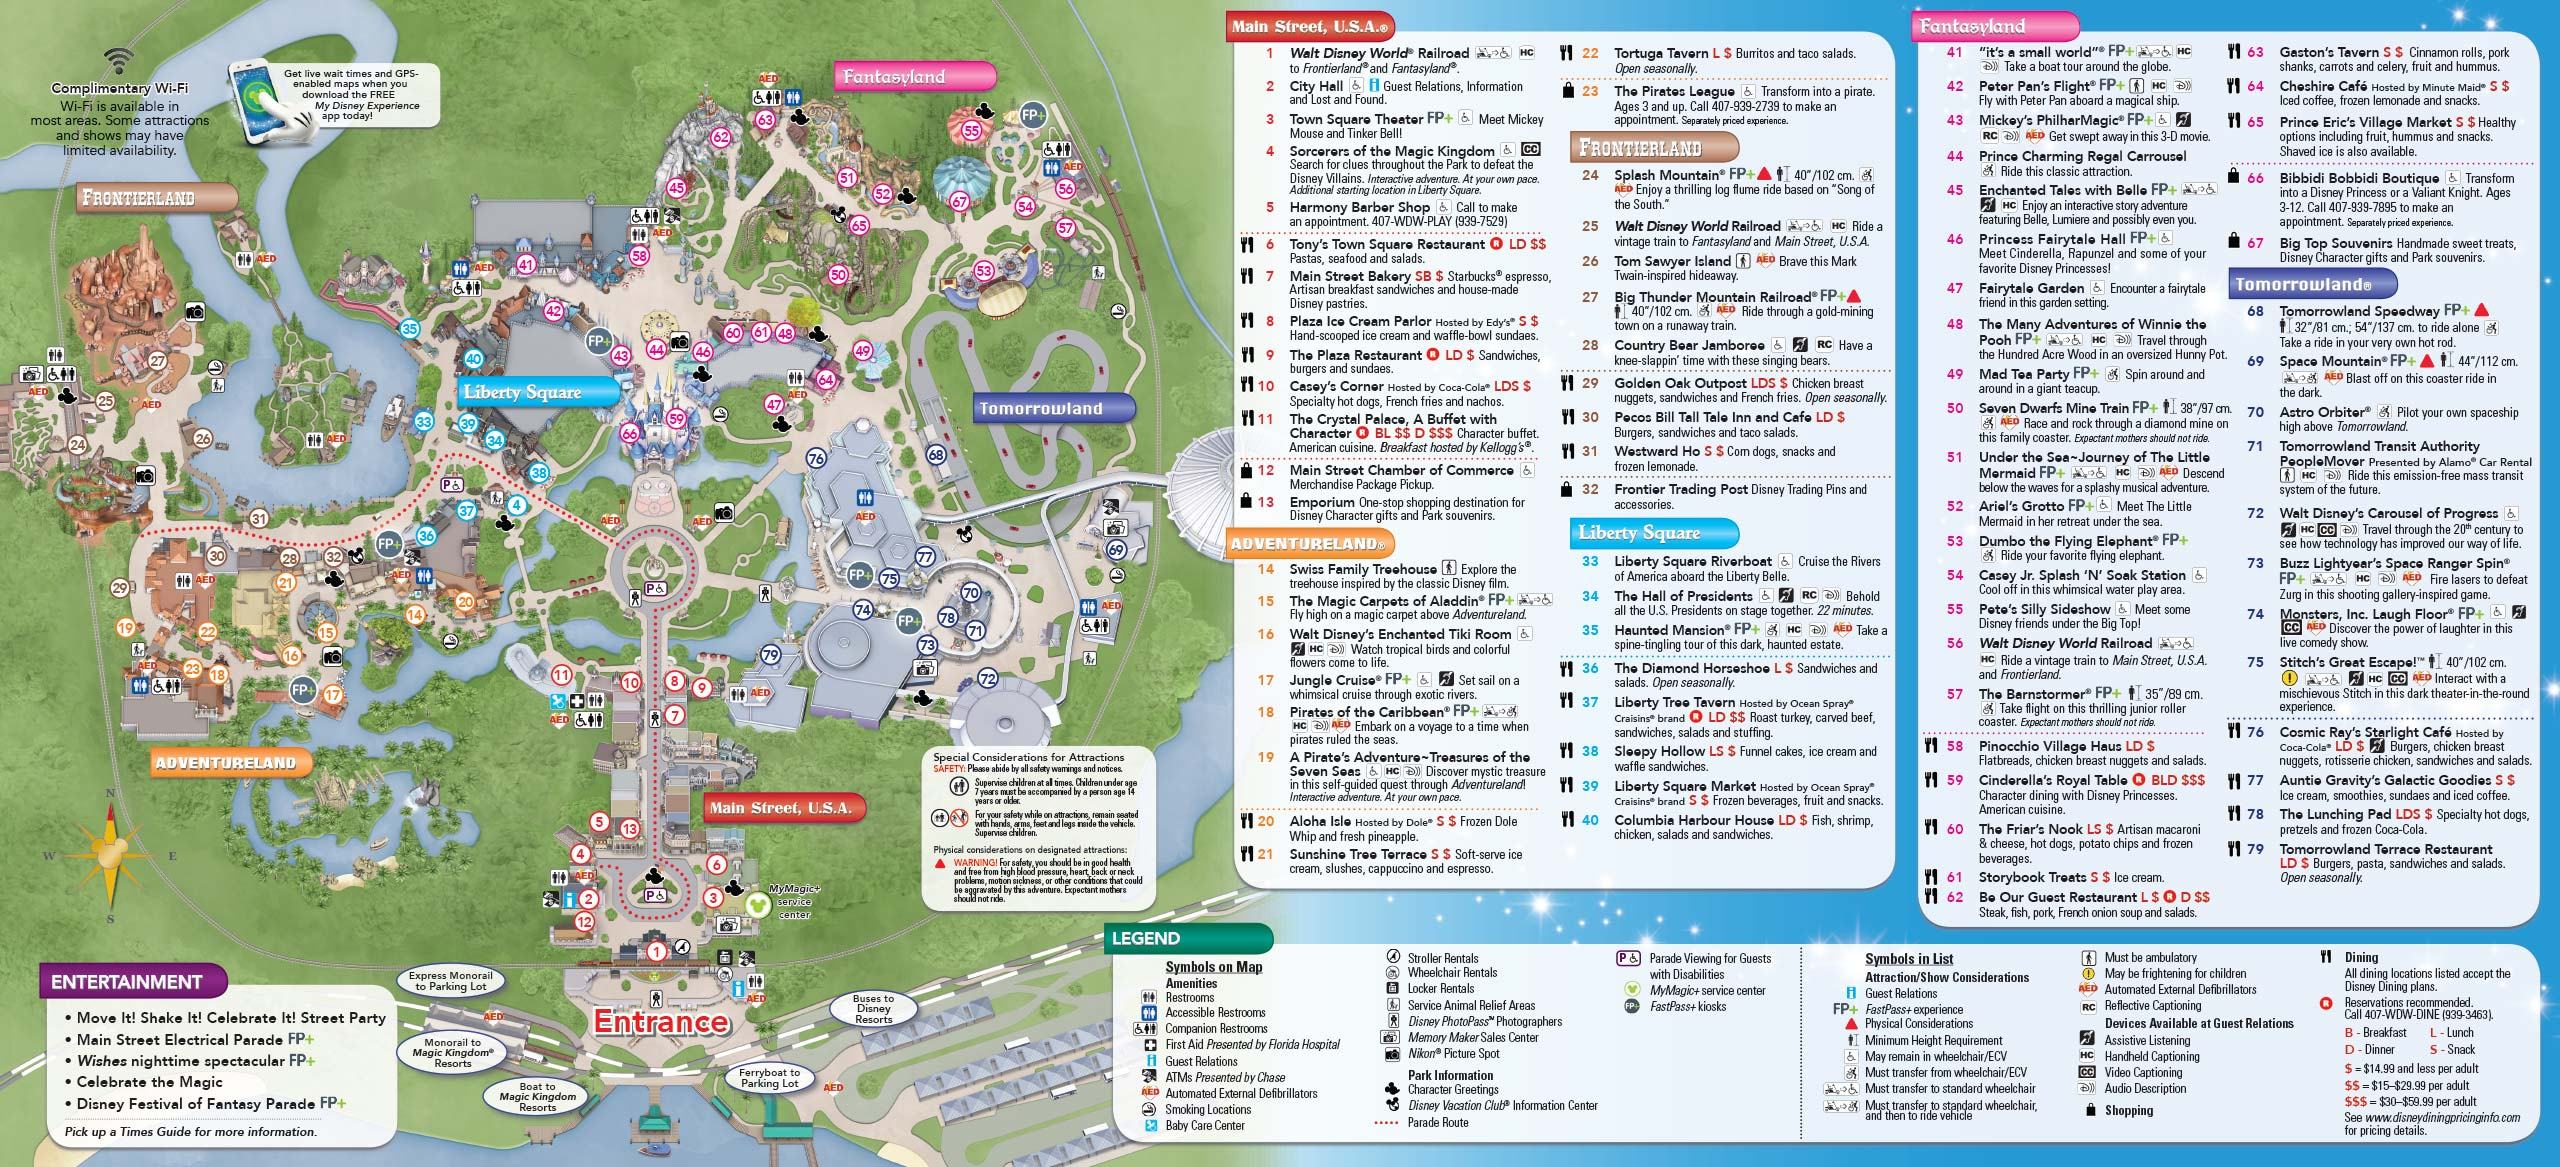 New Magic Kingdom guide map featuring Seven Dwarfs Mine Train - back